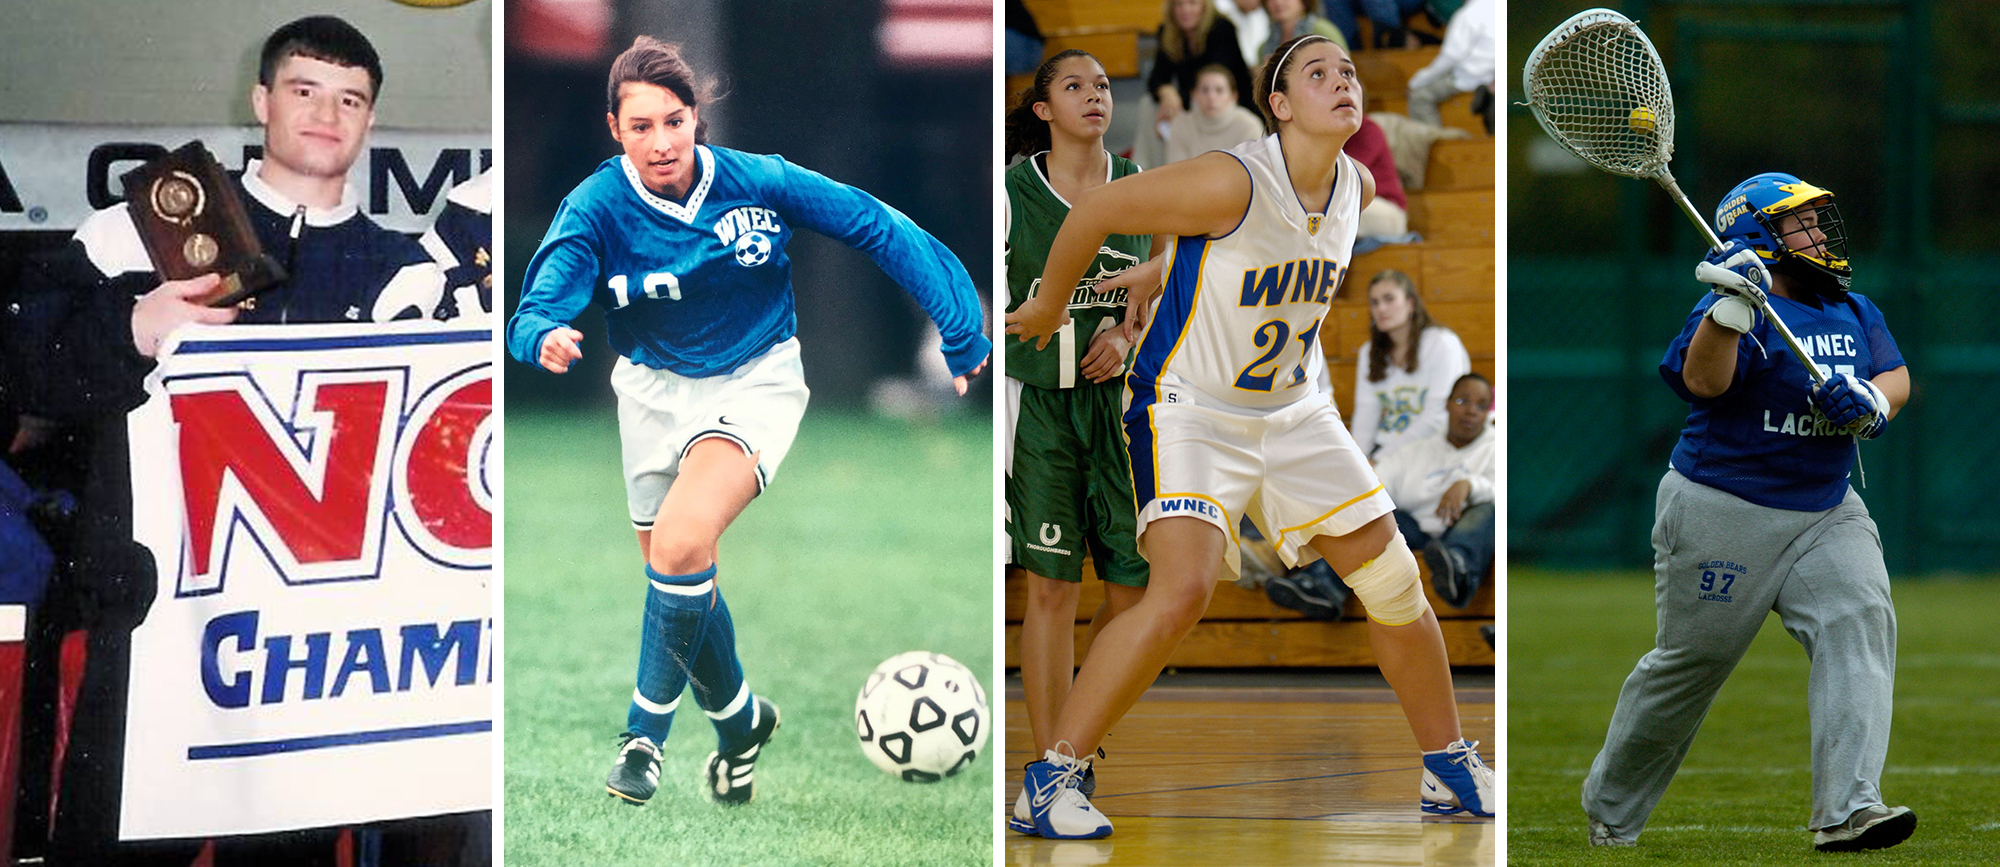 Western New England Announces 2019 Downes Athletic Hall of Fame Class